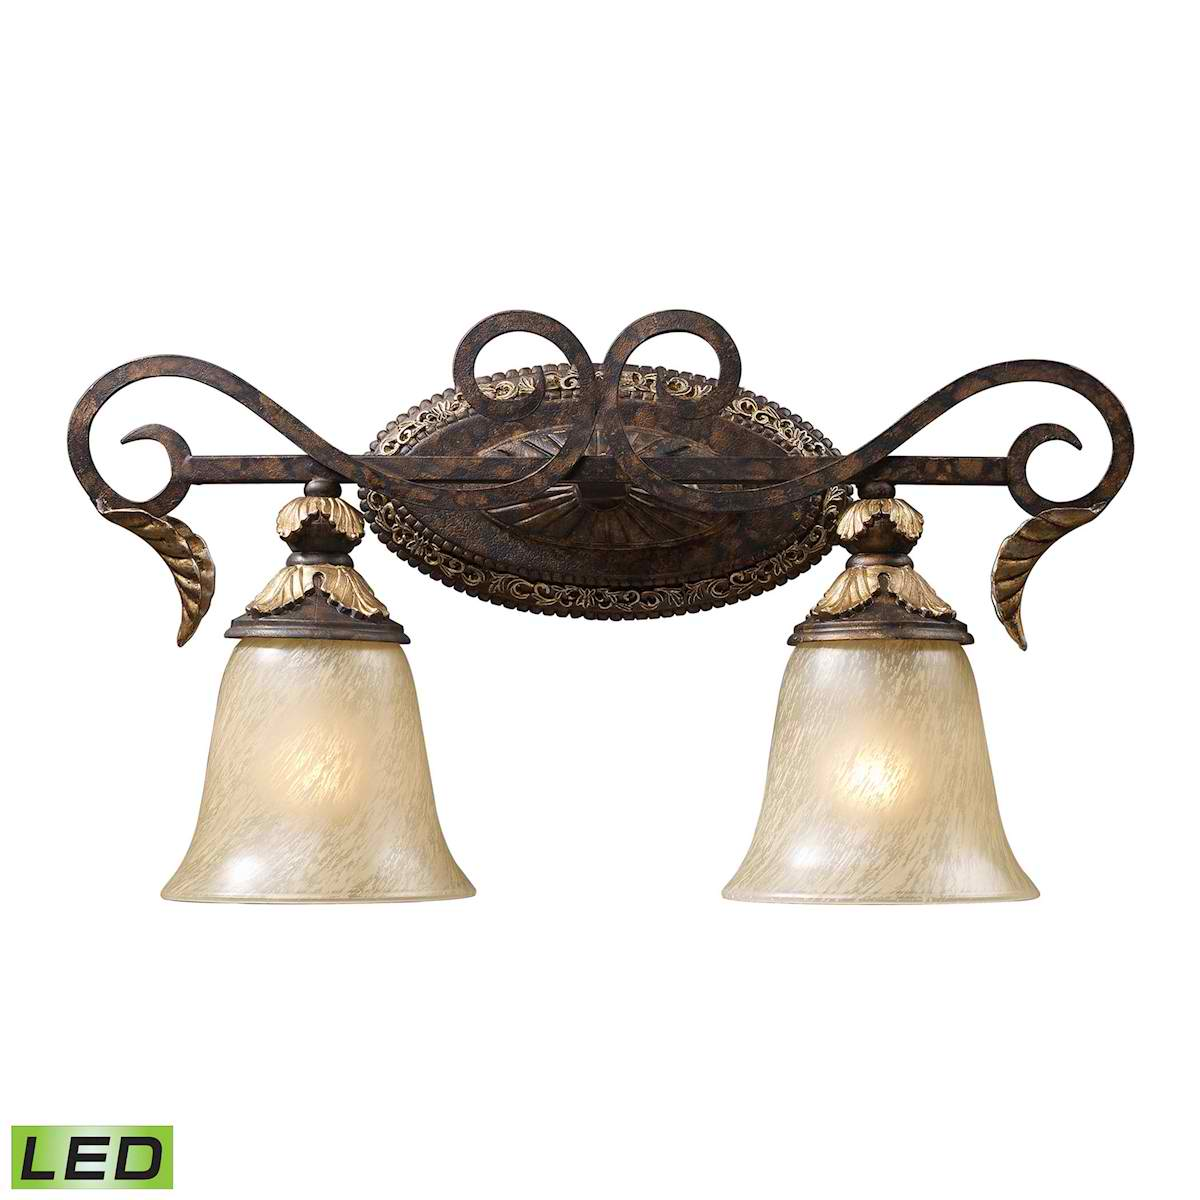 2 Light Vanity in Burnt Bronze - LED, 800 Lumens (1600 Lumens Total) with Full Scale Dimming Range,